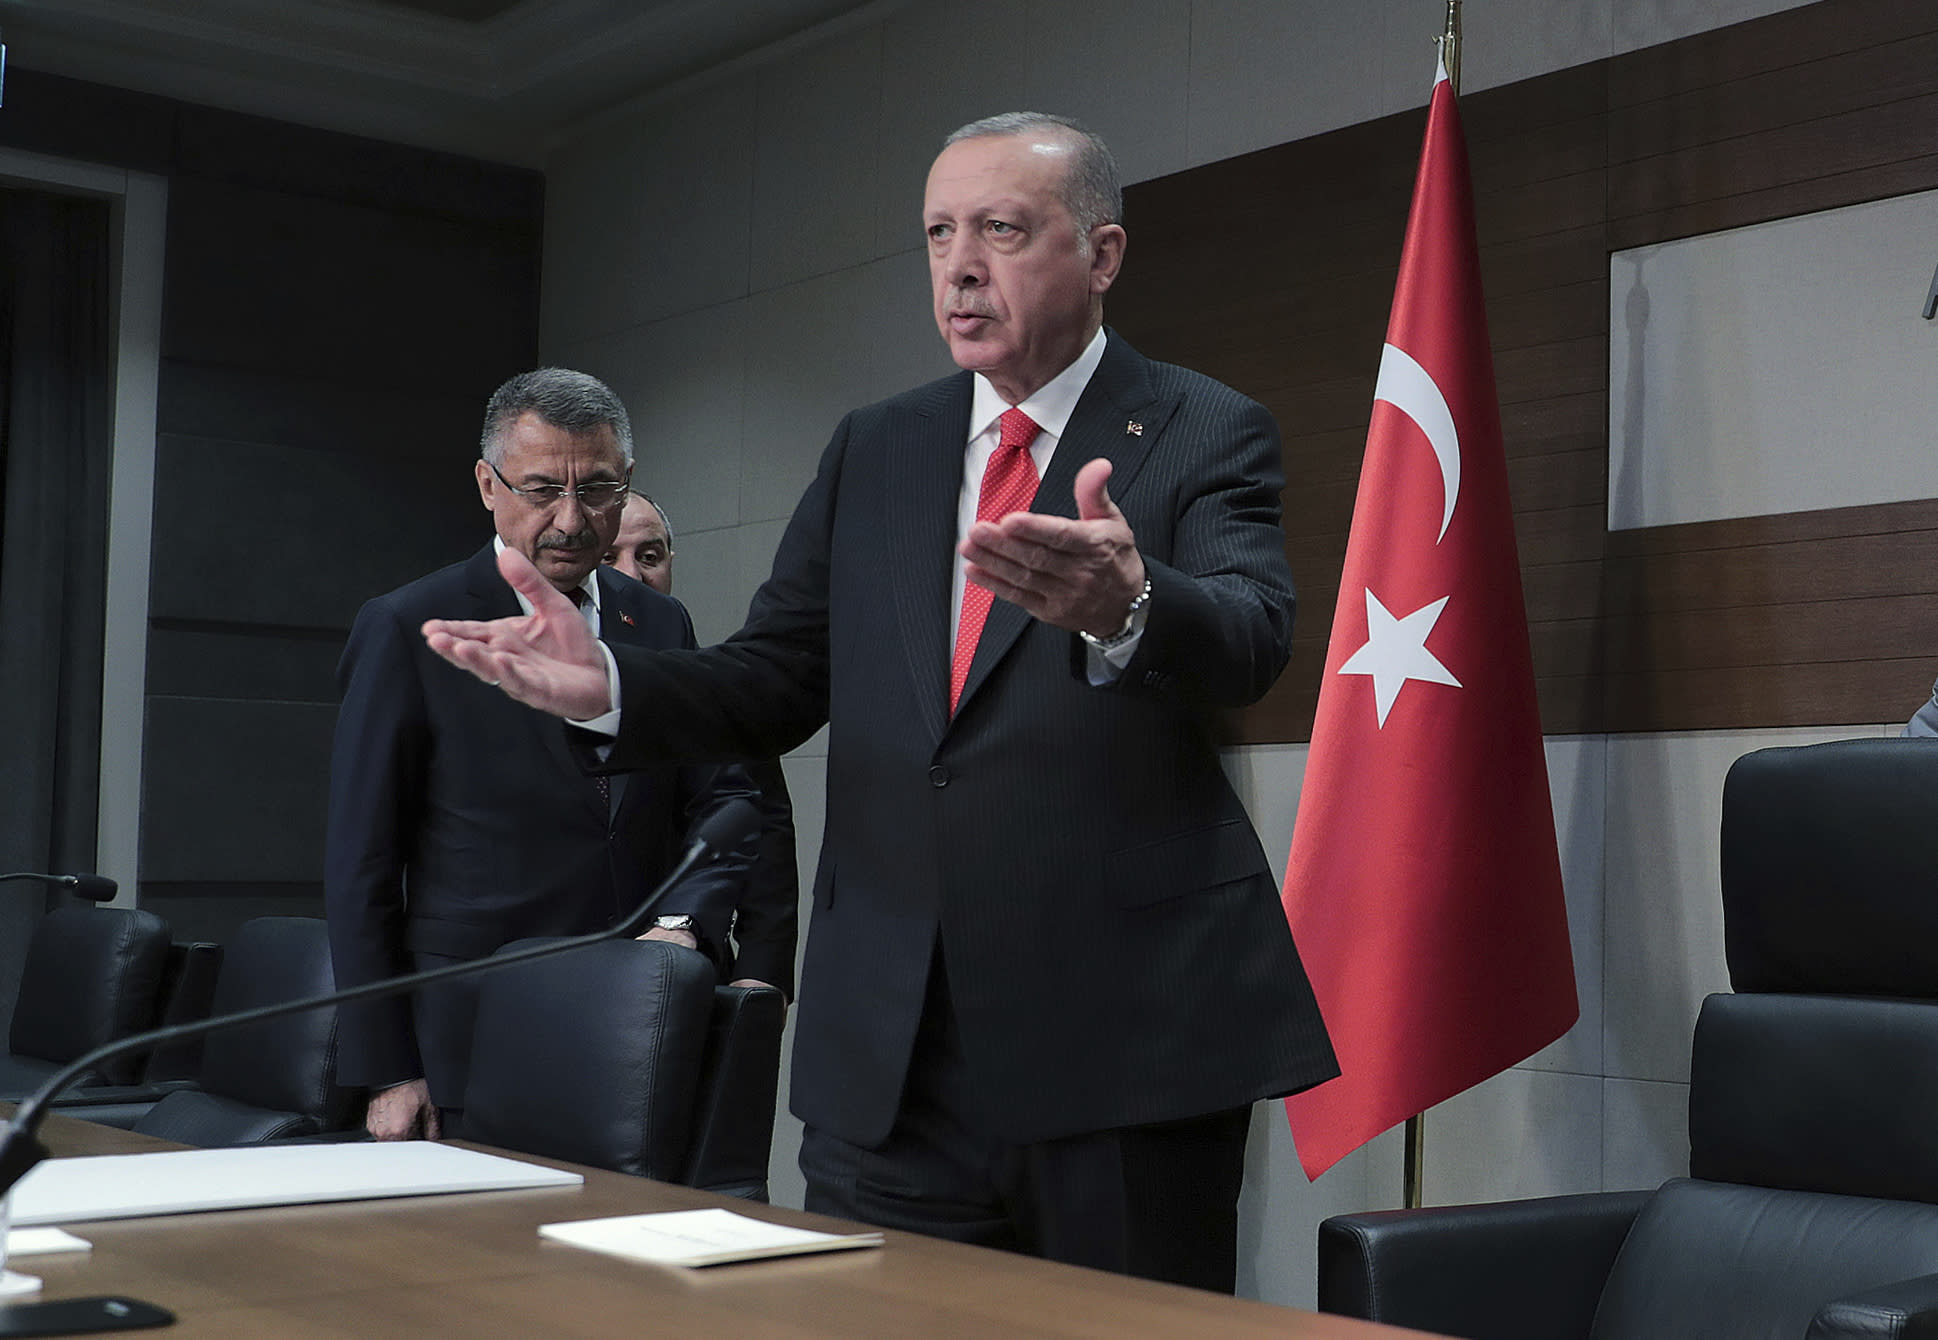 Turkey's President Recep Tayyip Erdogan speaks to the media before traveling to Azerbaijan, in Istanbul, Monday, Oct. 14, 2019. Erdogan has criticized NATO allies which are looking to broaden an arms embargo against Turkey over its push into northern Syria. (Presidential Press Service/Pool Photo via AP)